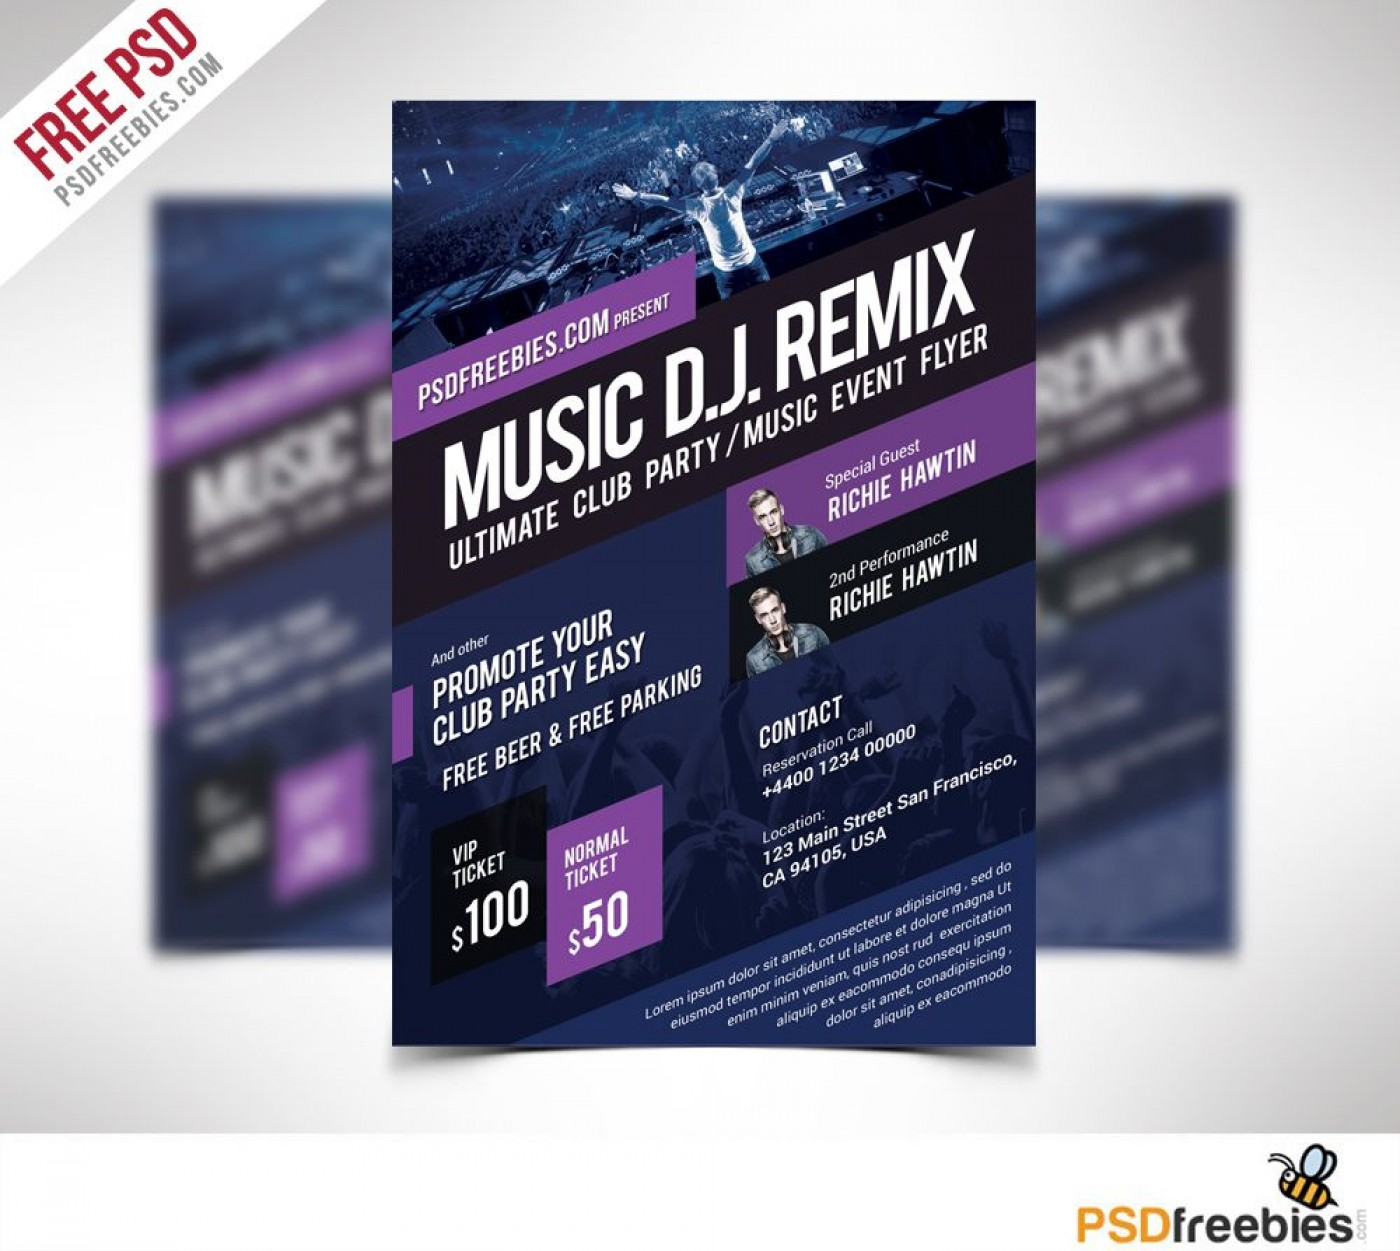 009 Rare Event Flyer Template Free Psd High Definition  Music Boxing1400